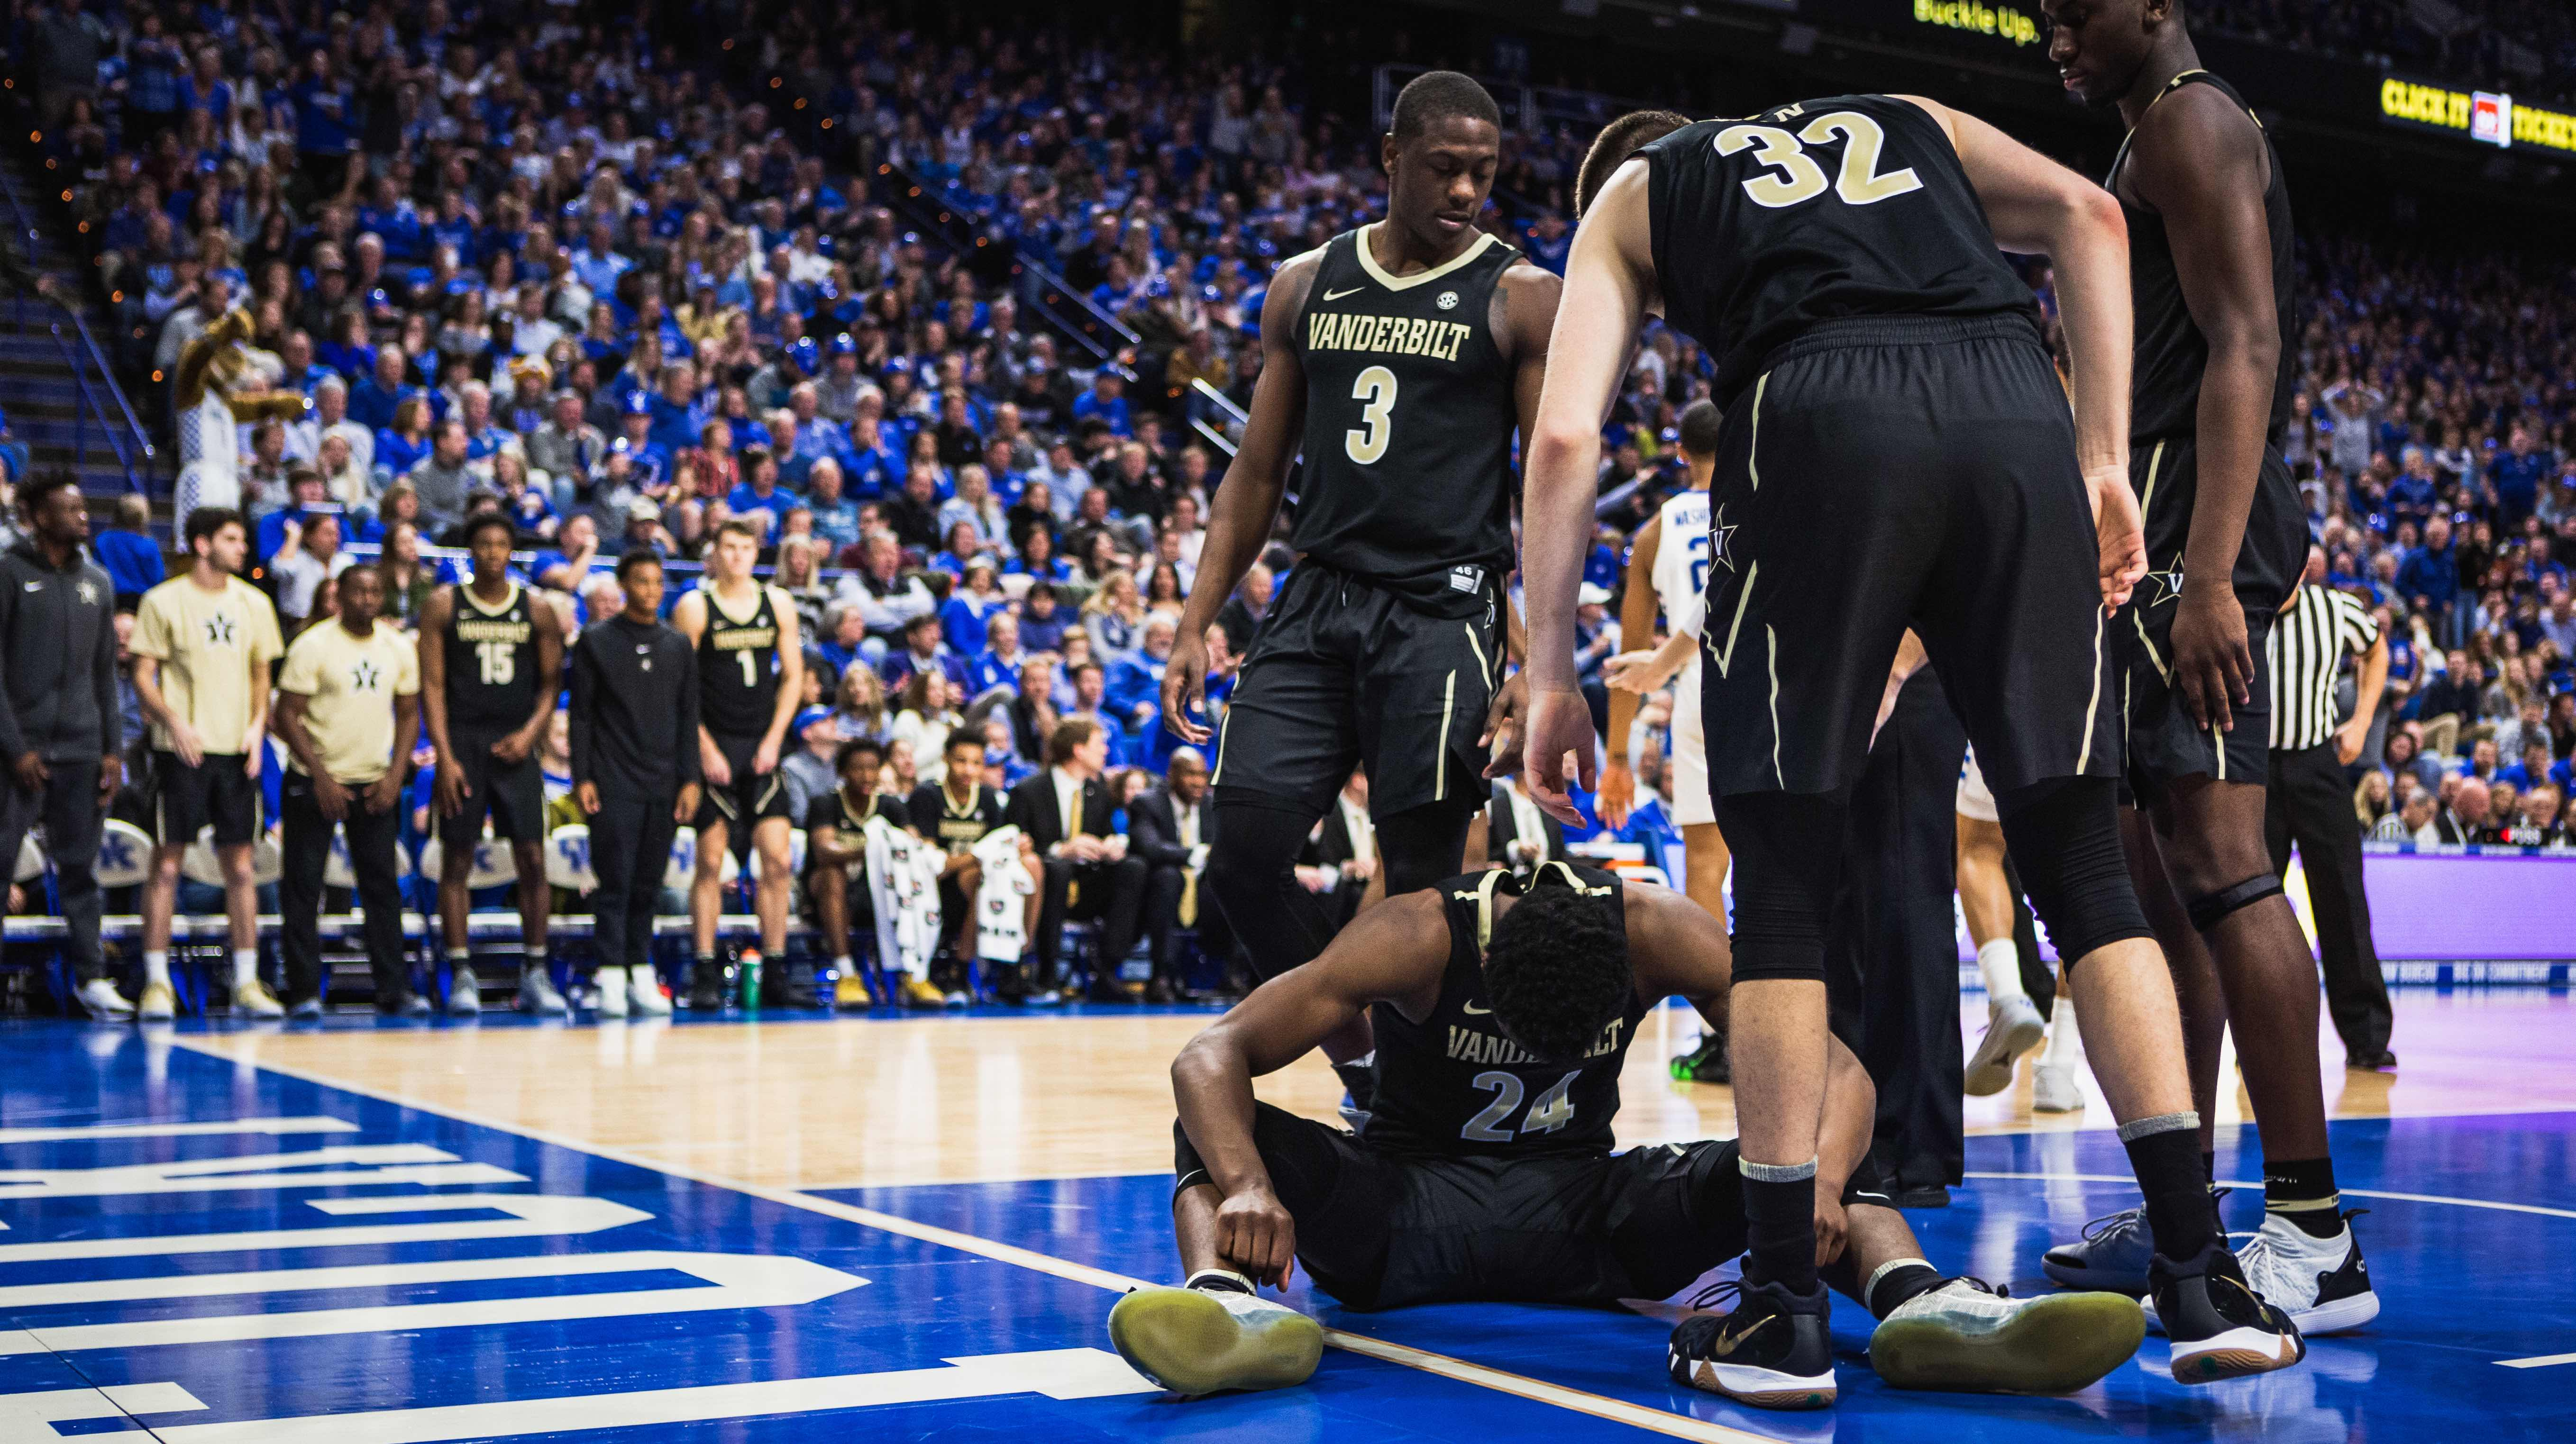 Winning Without Garland: Can the Commodores right the ship after tough loss in Lexington?